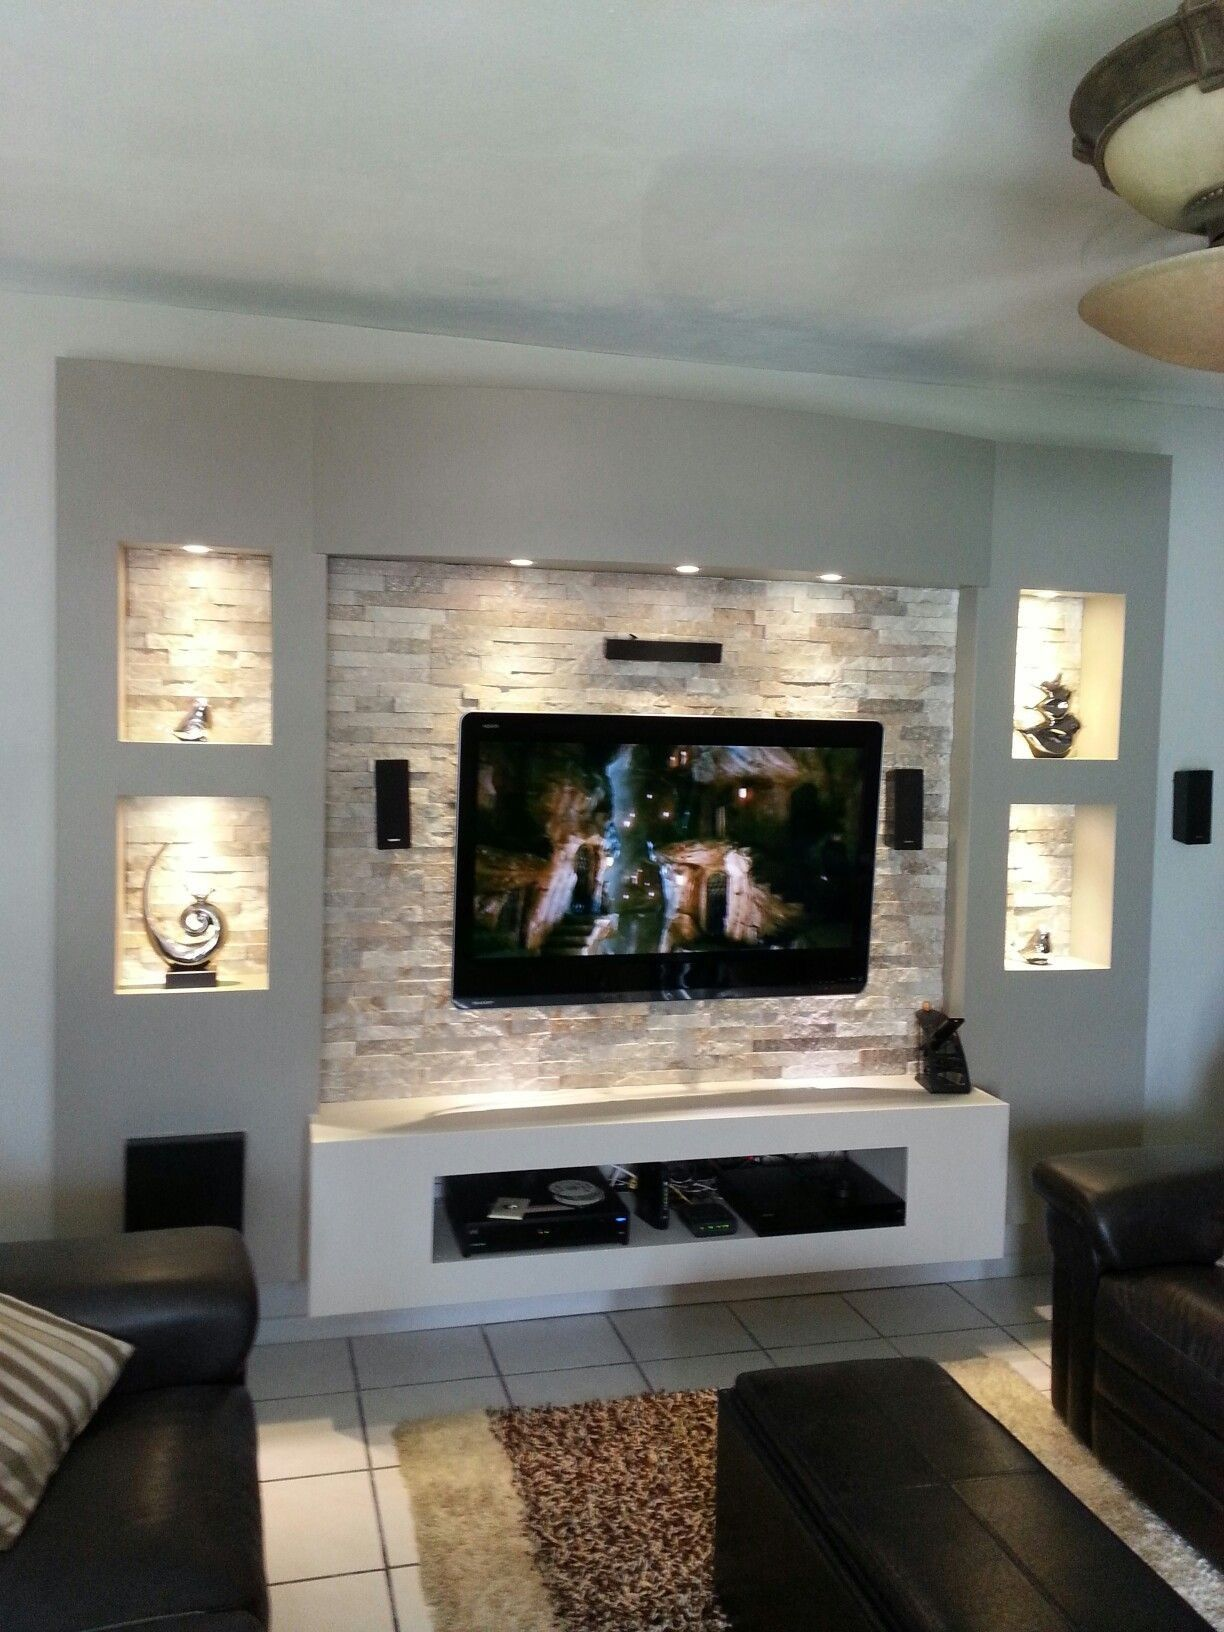 Feature Wall Ideas For Living Room Appealing Innovacia N Tv Unit My Own Projects Pinterest Tv Un Cheap Living Rooms Cheap Living Room Decor Living Room Tv Wall